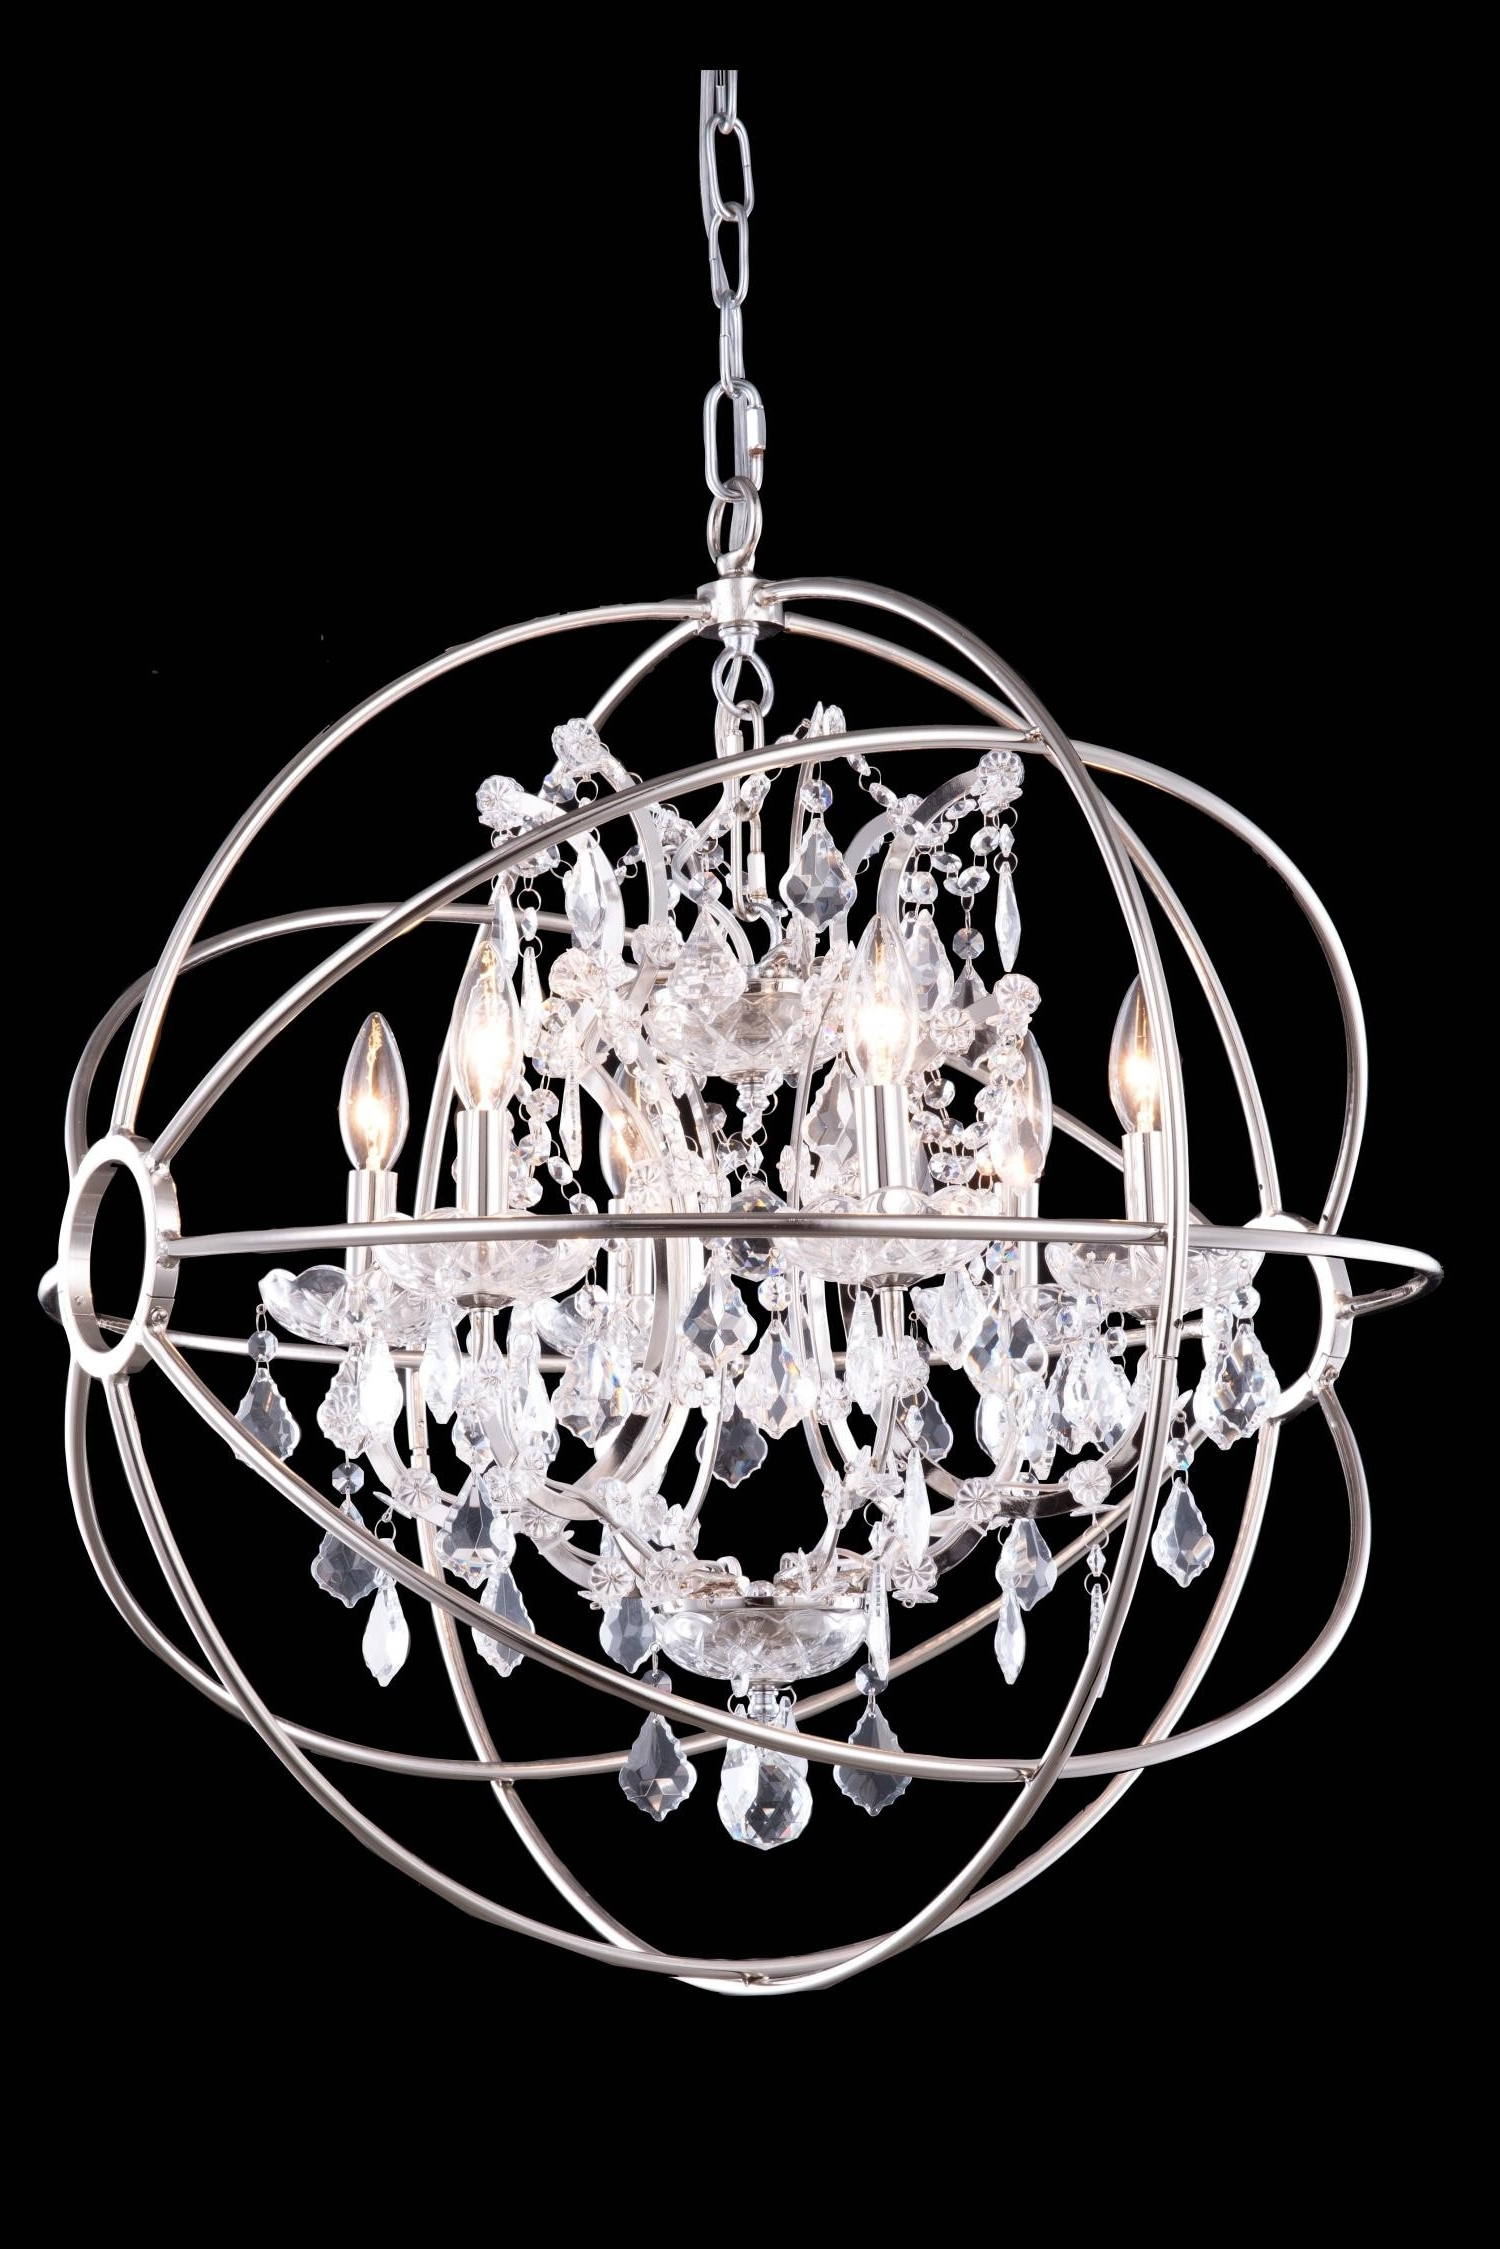 Crystal Globe Chandelier With Regard To Well Known Chandelier (View 5 of 15)